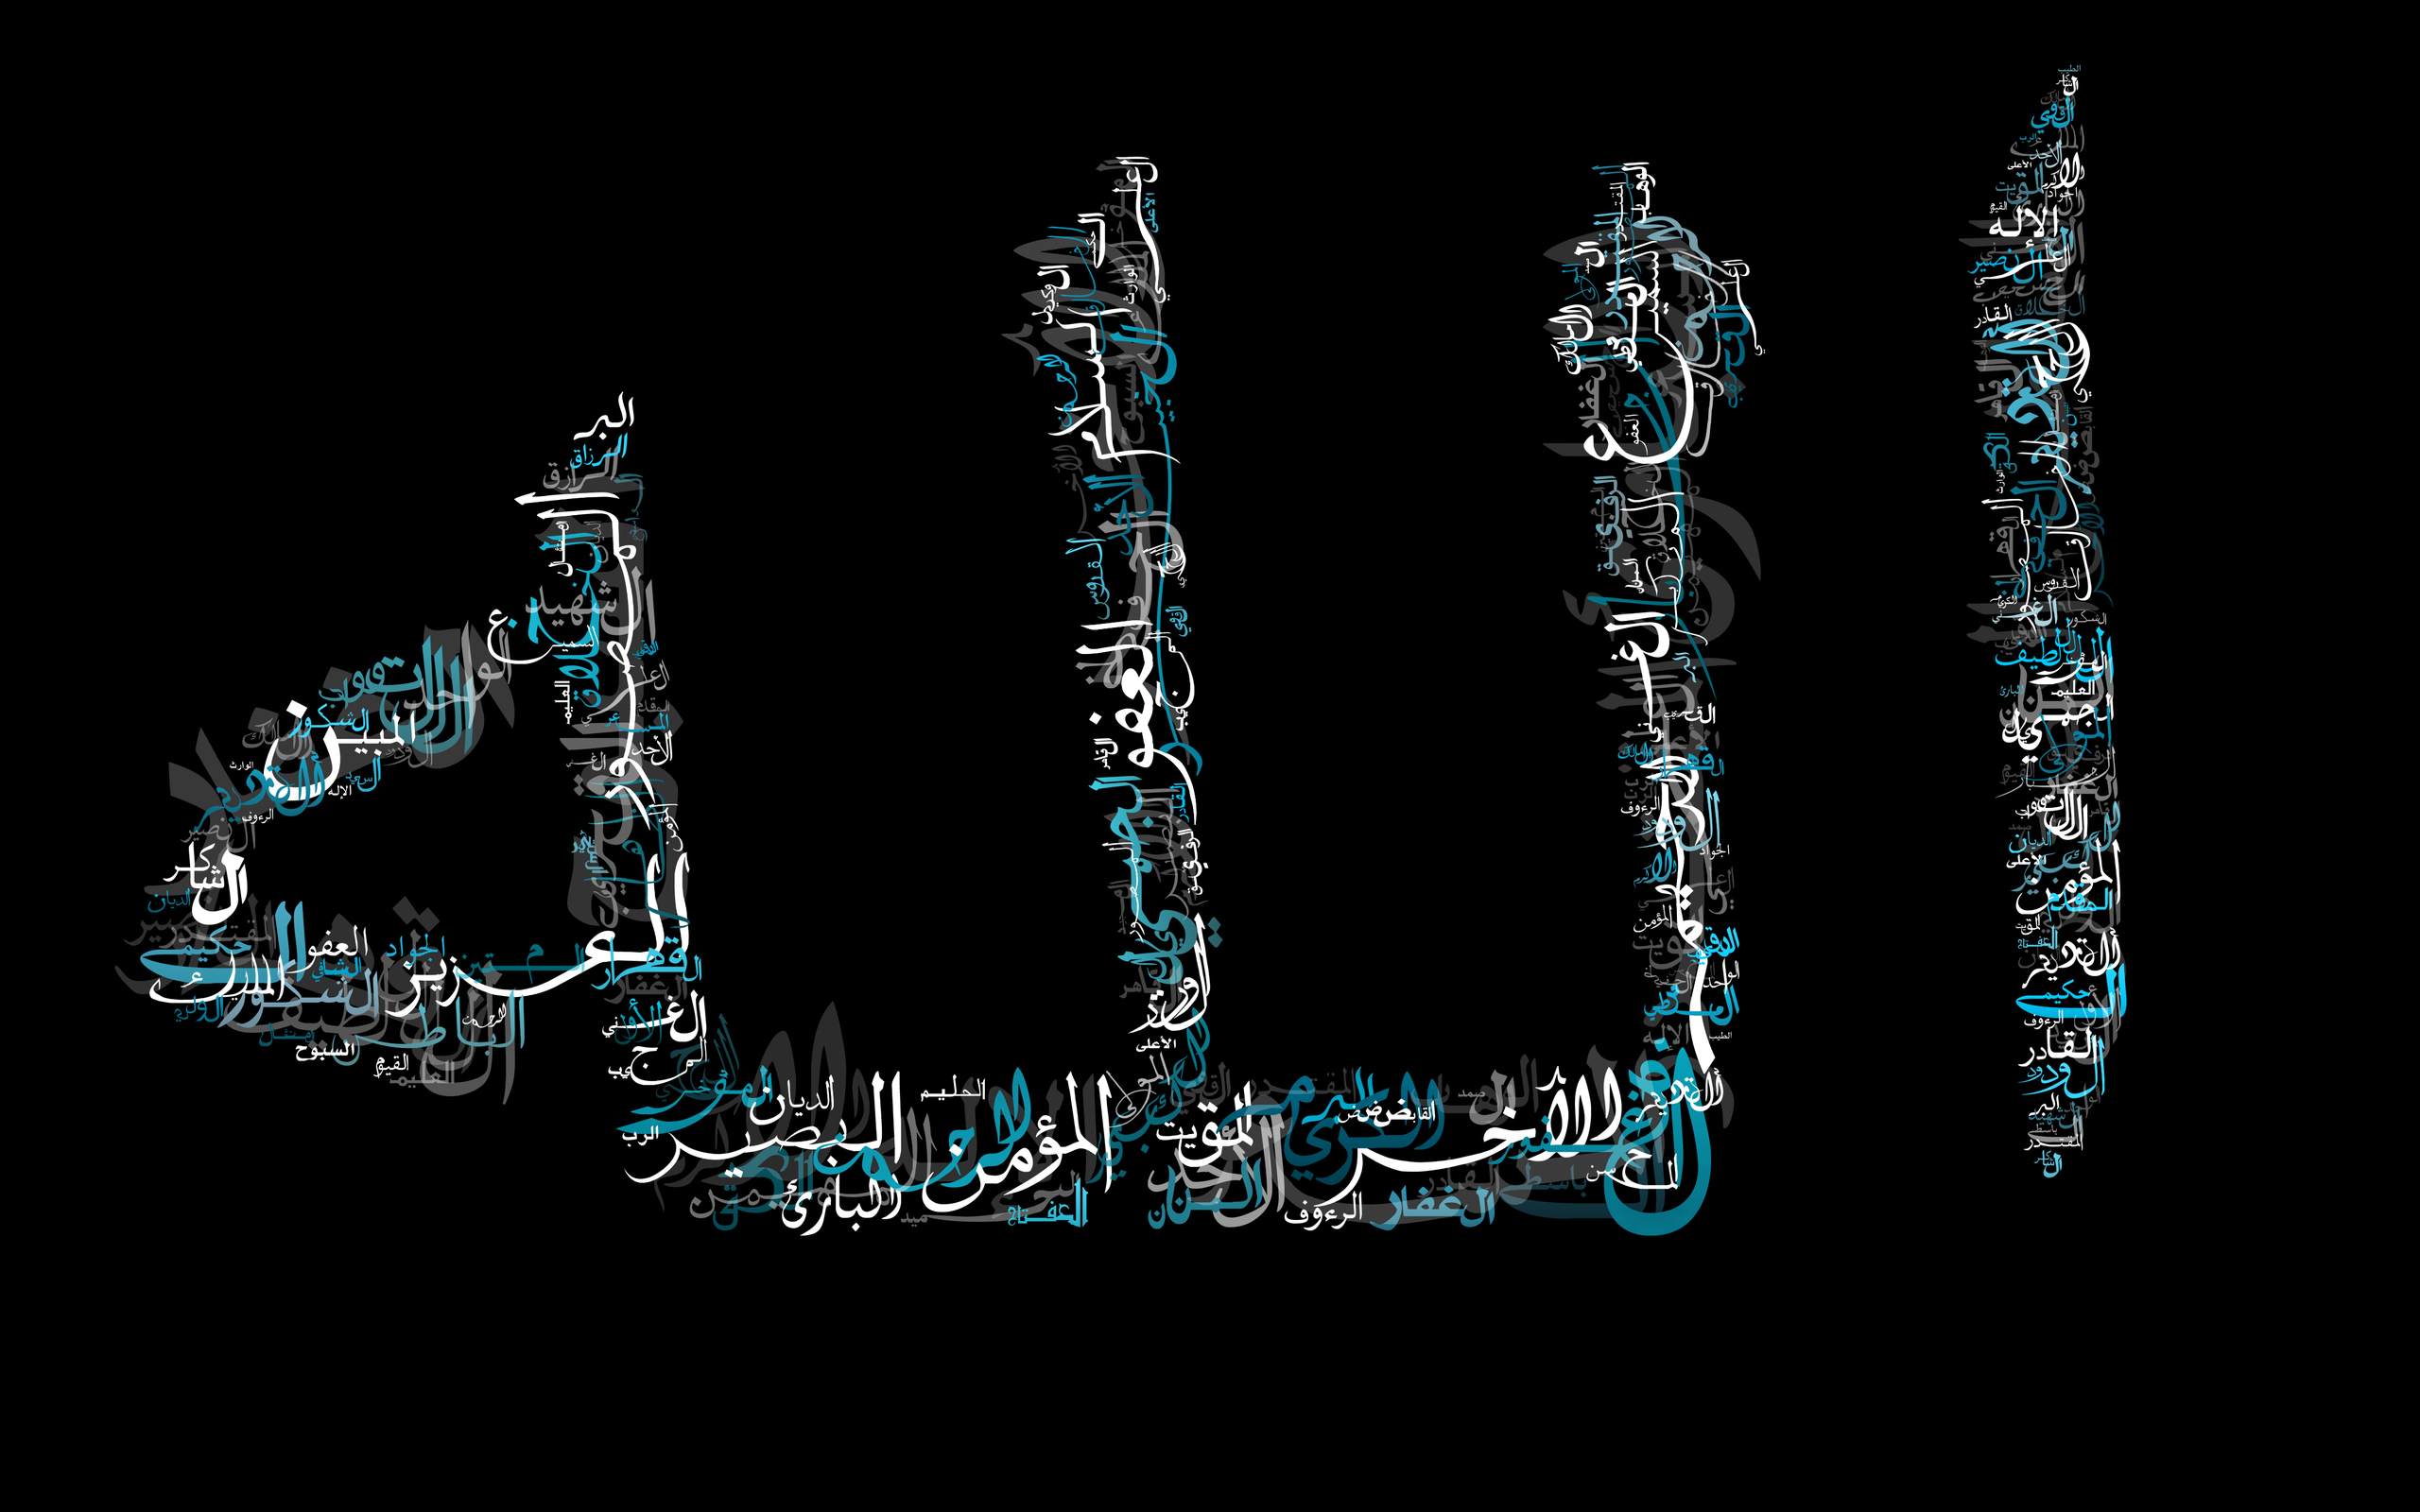 3d allah calligraphy wallpaper wide free download Allah calligraphy wallpaper